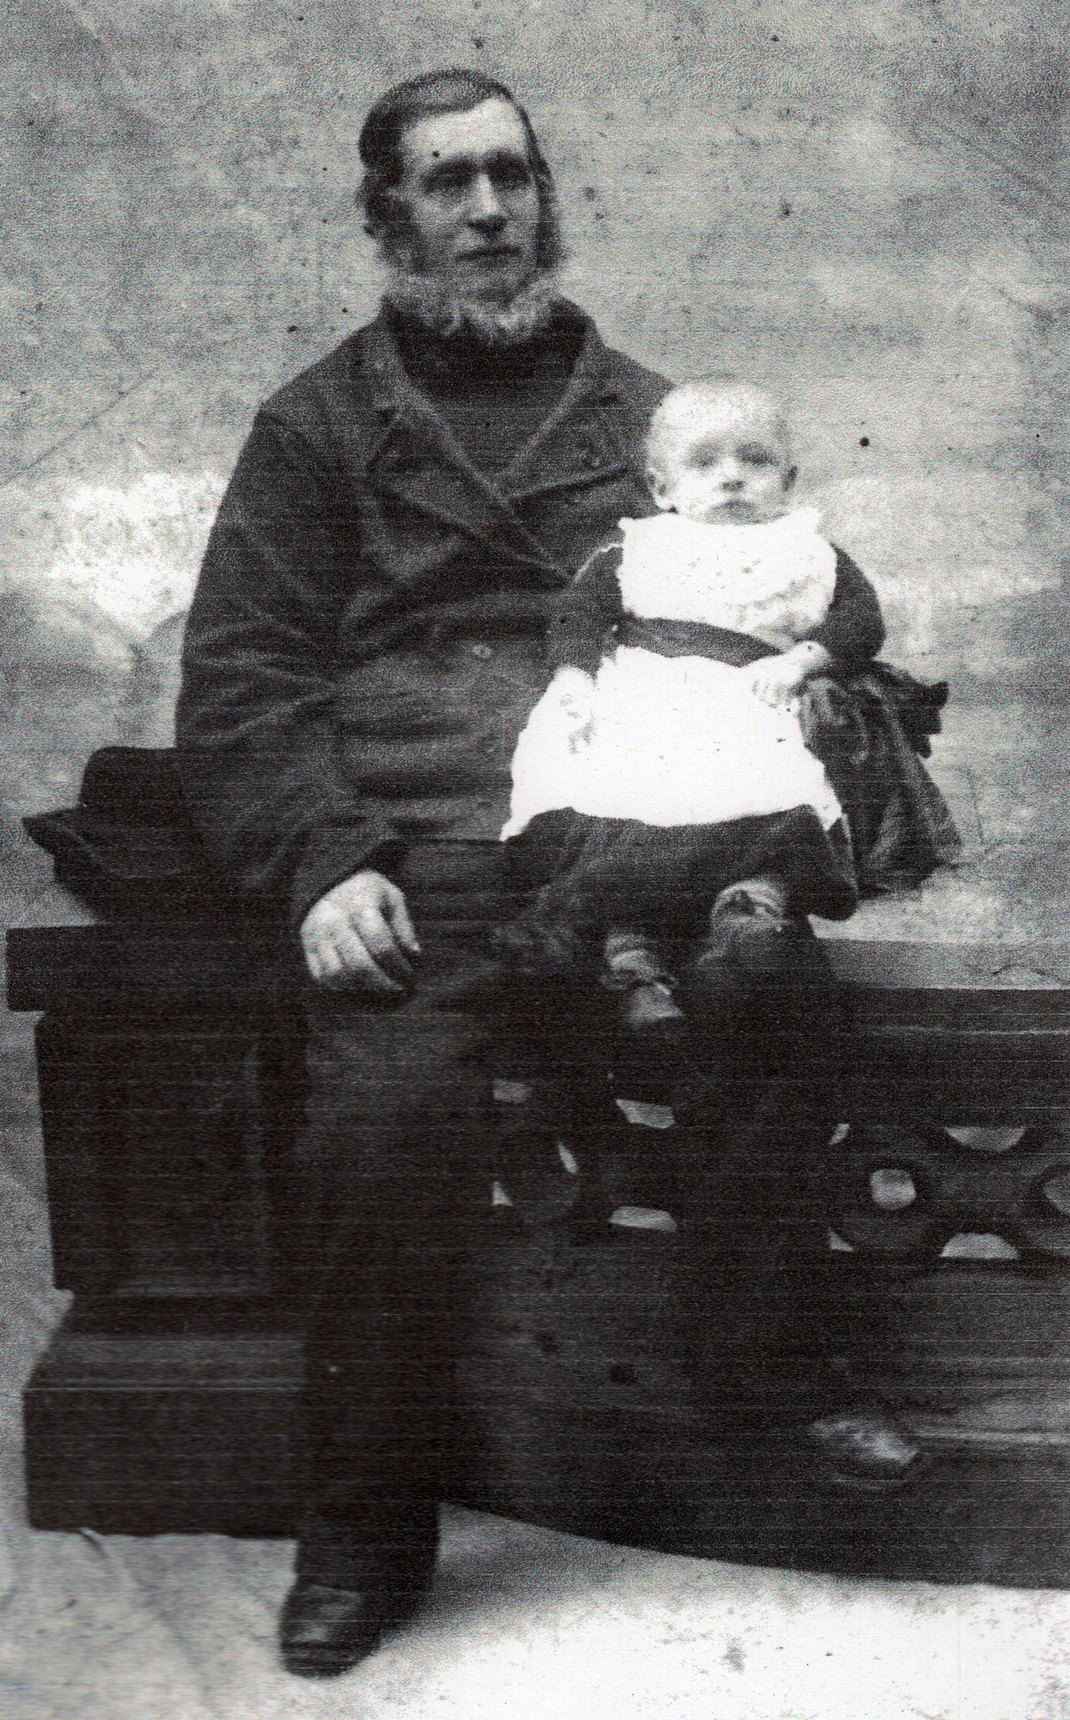 Studio Portrait Man With Young Child c.1885